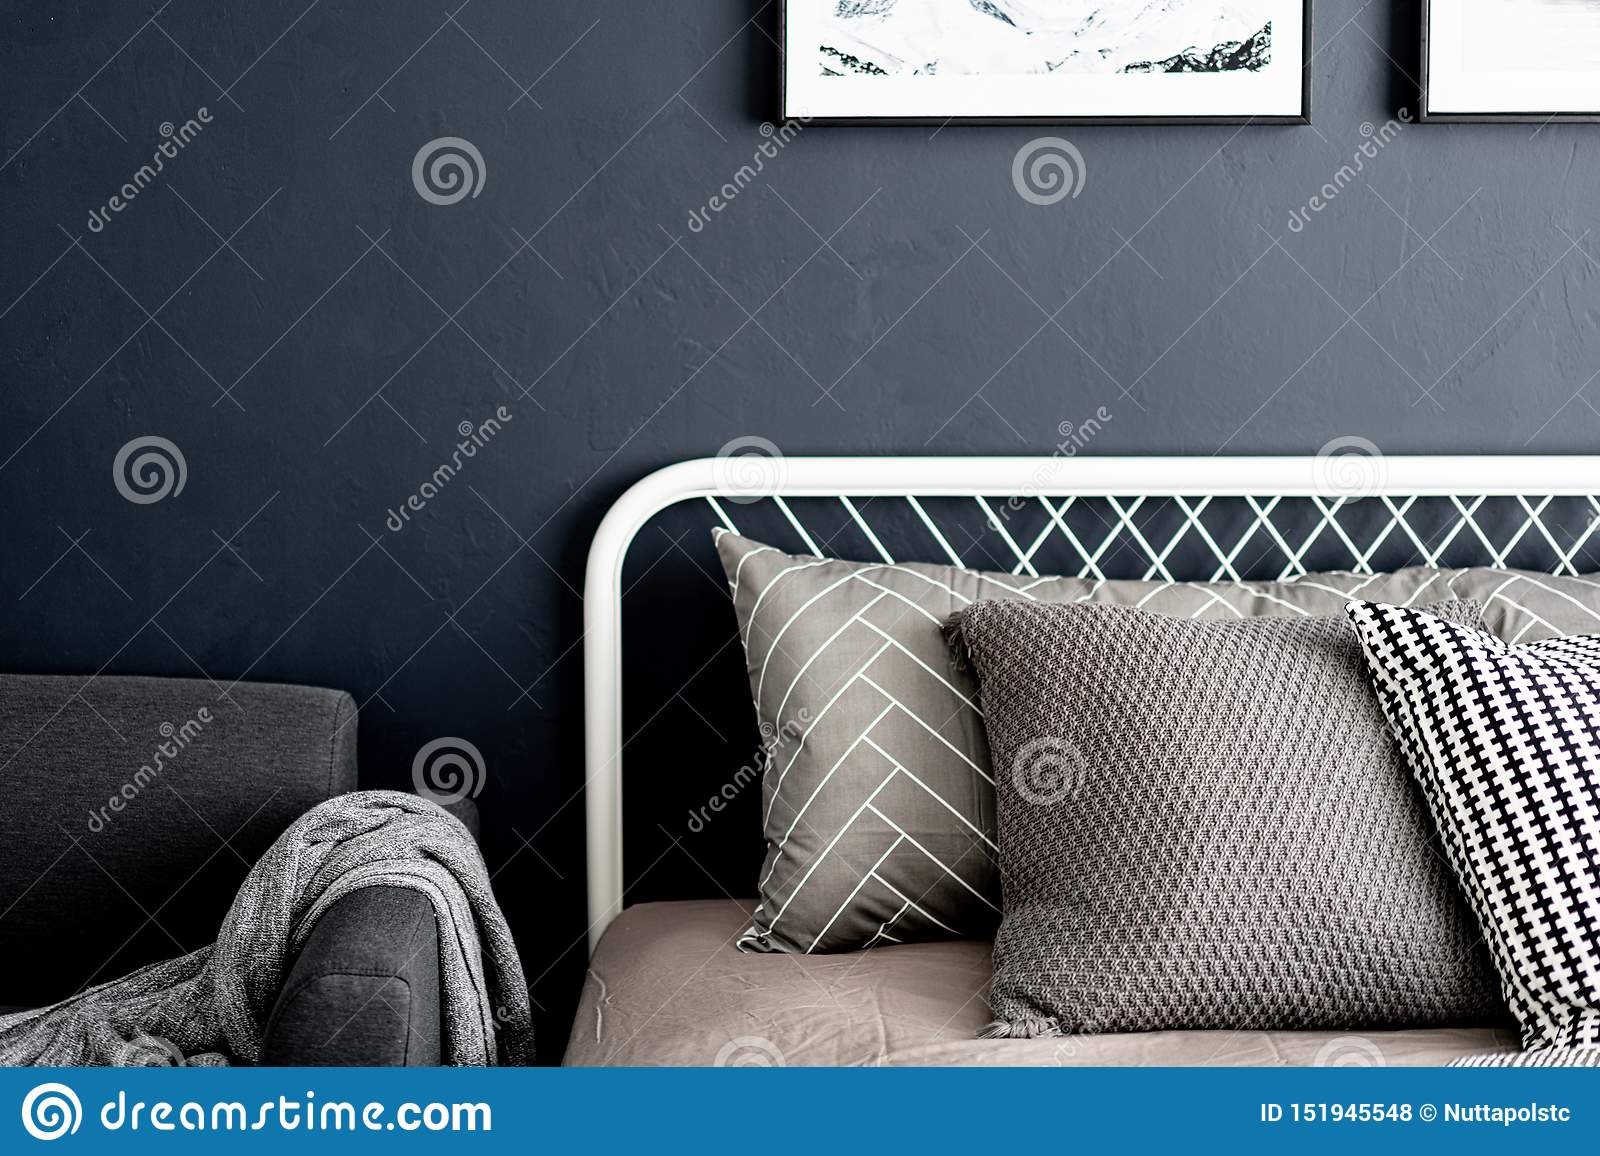 Bedroom corner setting with comfortable graphic pillows in neutral color with navy blue painted wall/ comfortable interior / inter